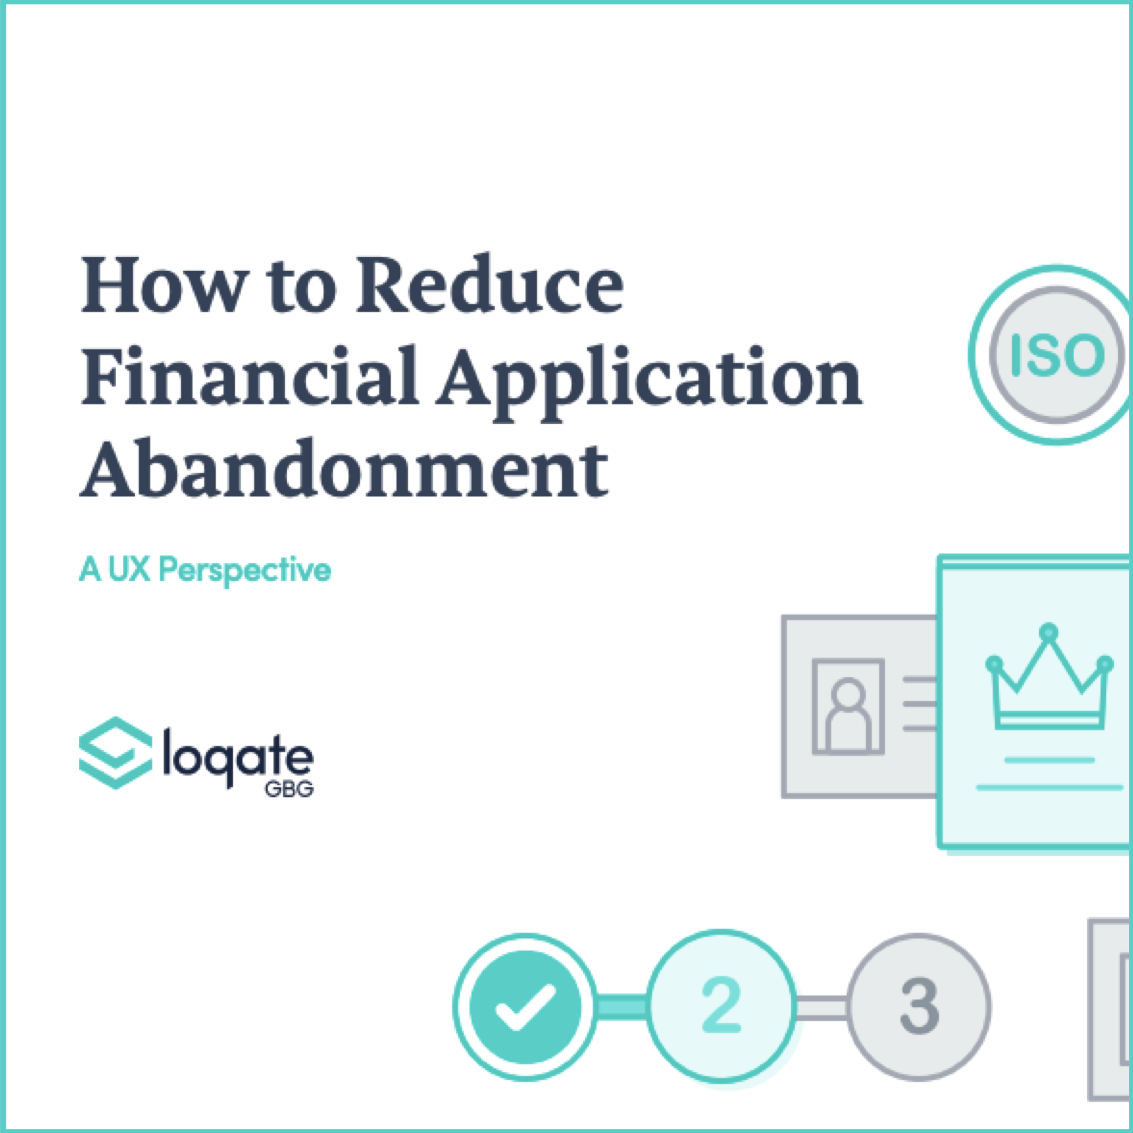 How to Reduce Financial Application Abandonment